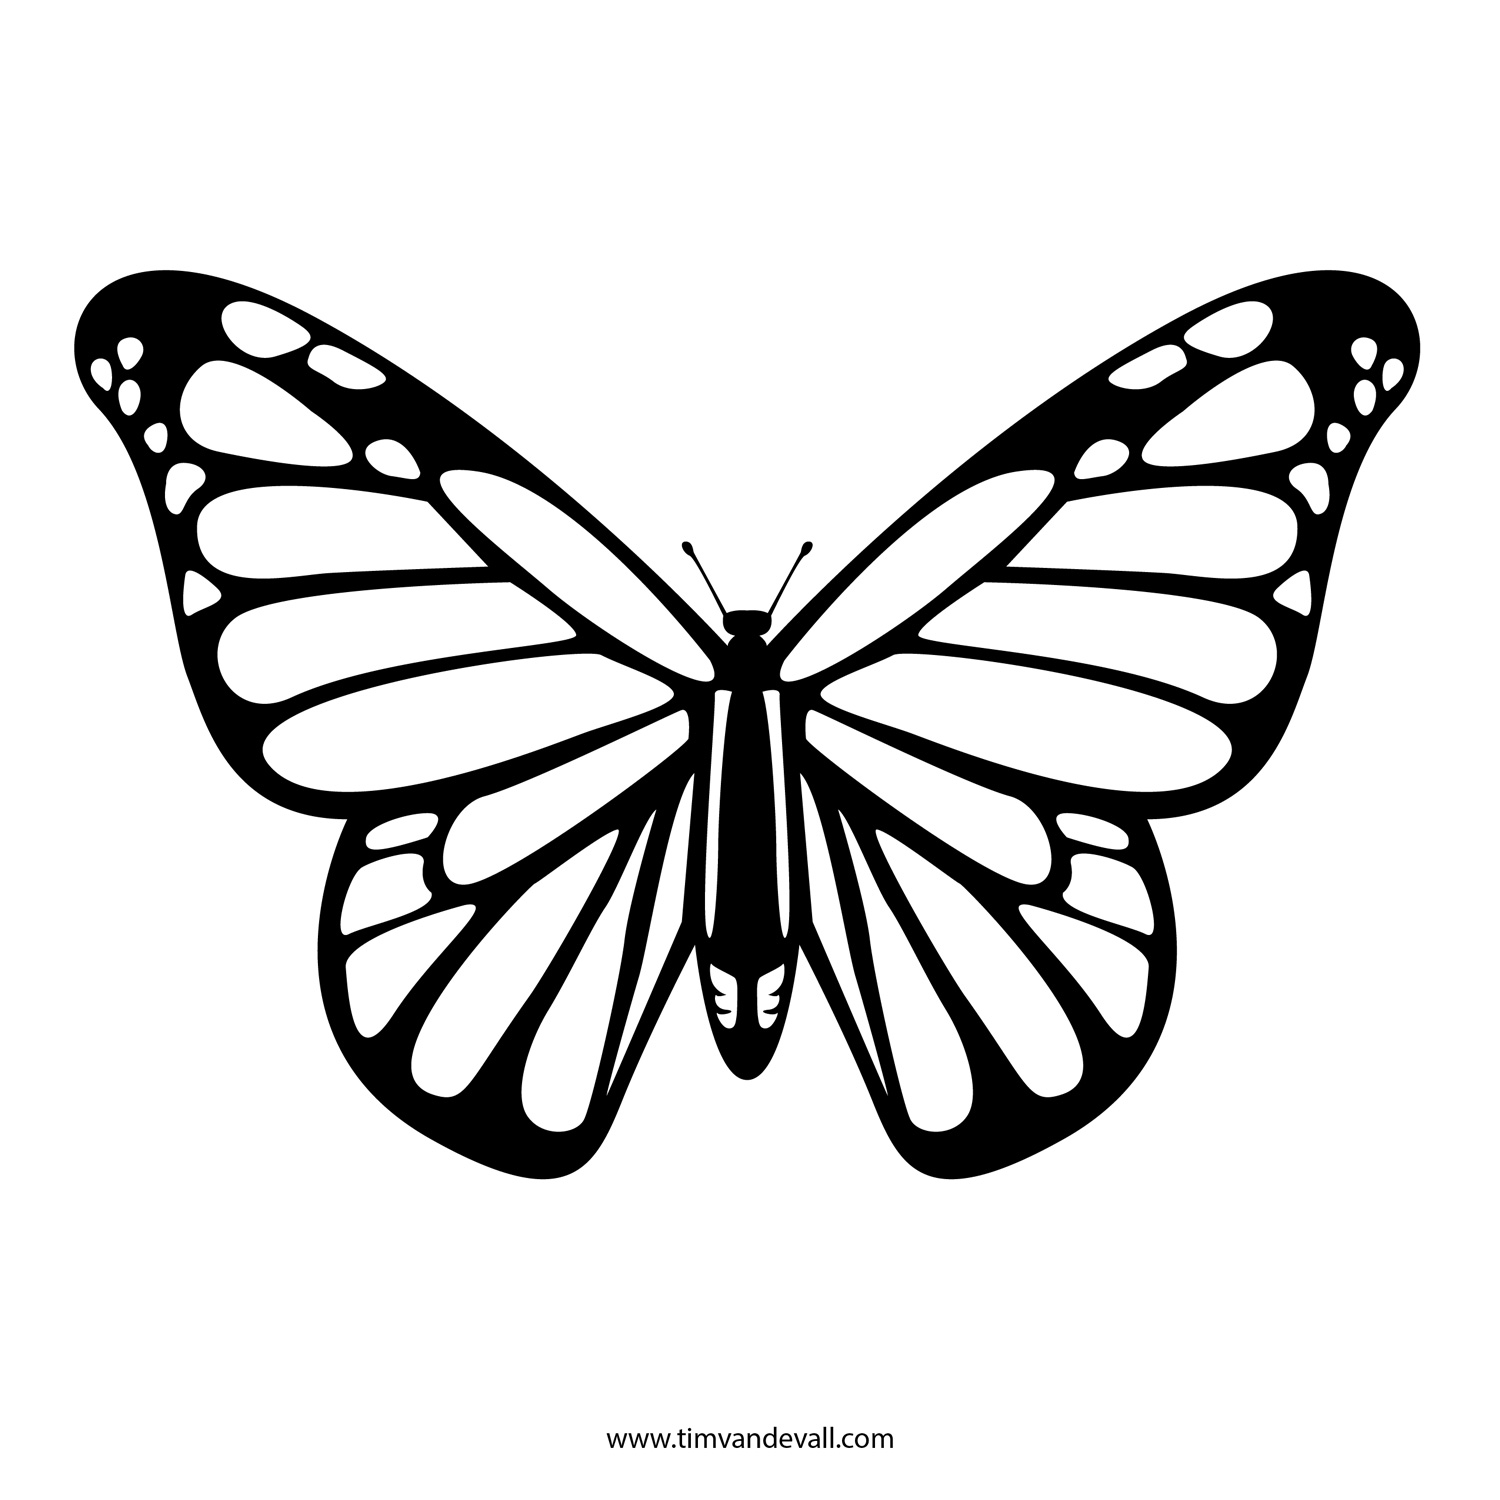 1500x1500 Butterfly Outline Printable Coloring Pages Autorespondersarena